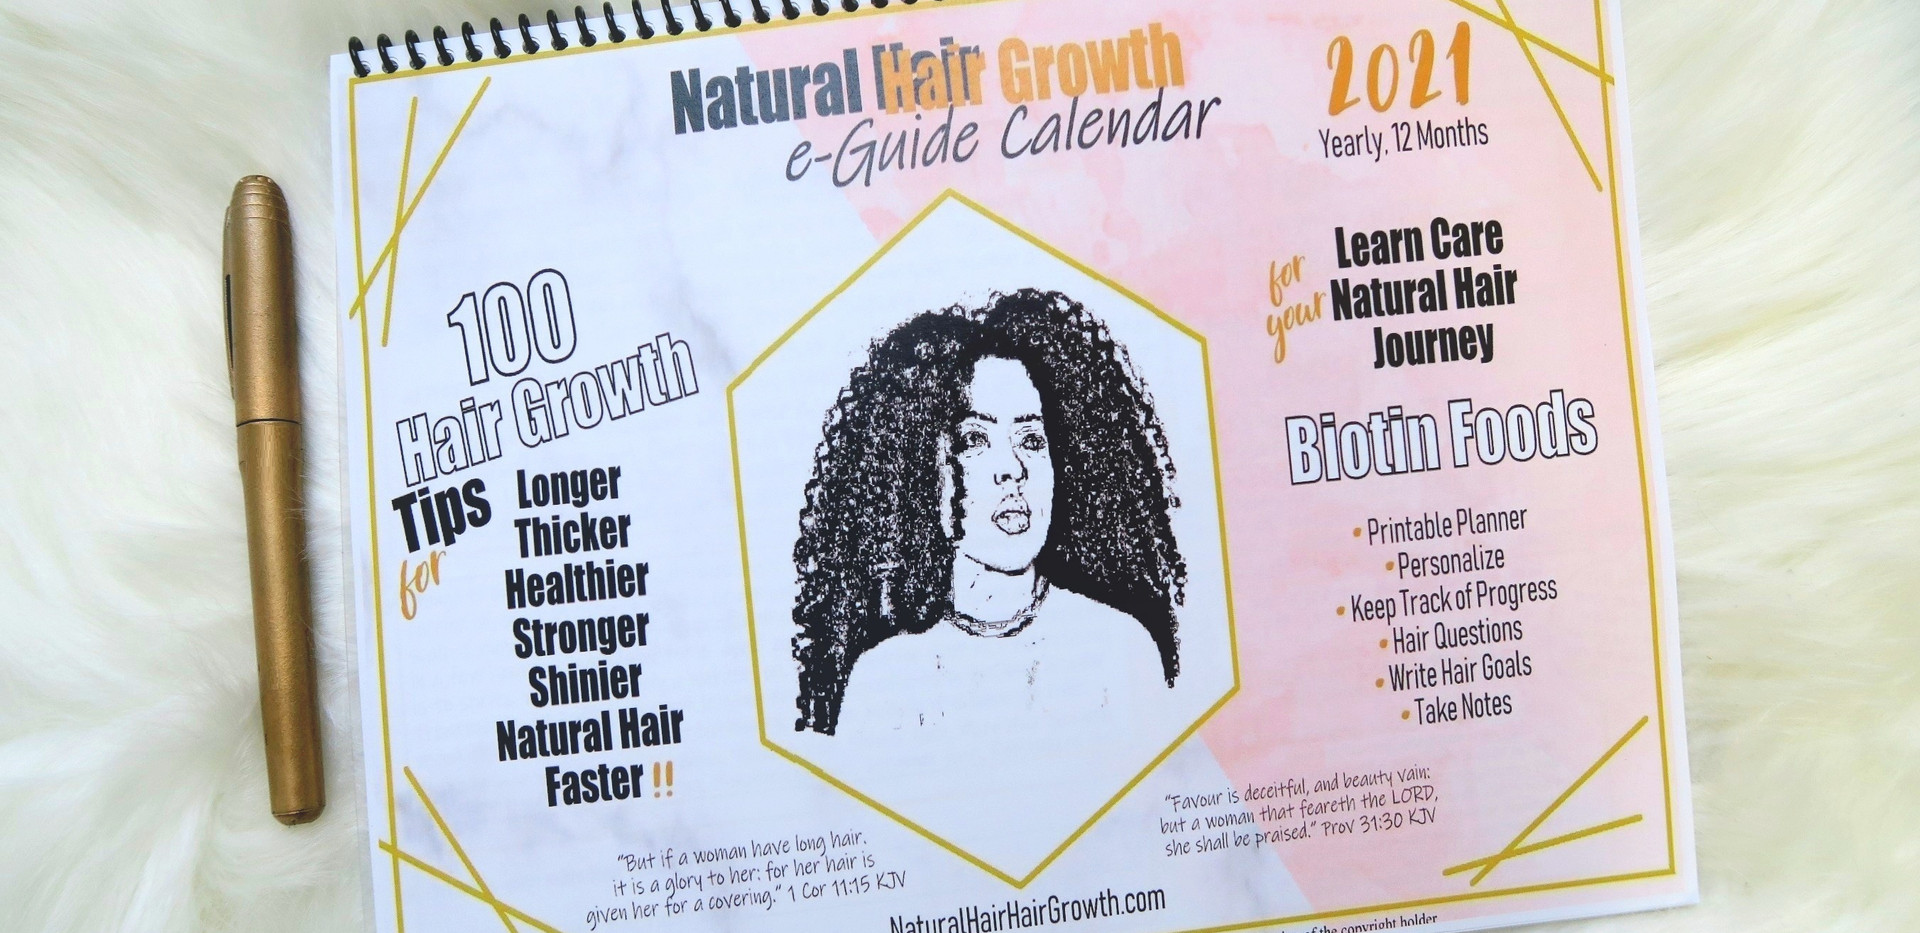 You Can Print Your 'Natural Hair Hair Growth eGuide Calendar' 2021 and/or Use on Your Devices!